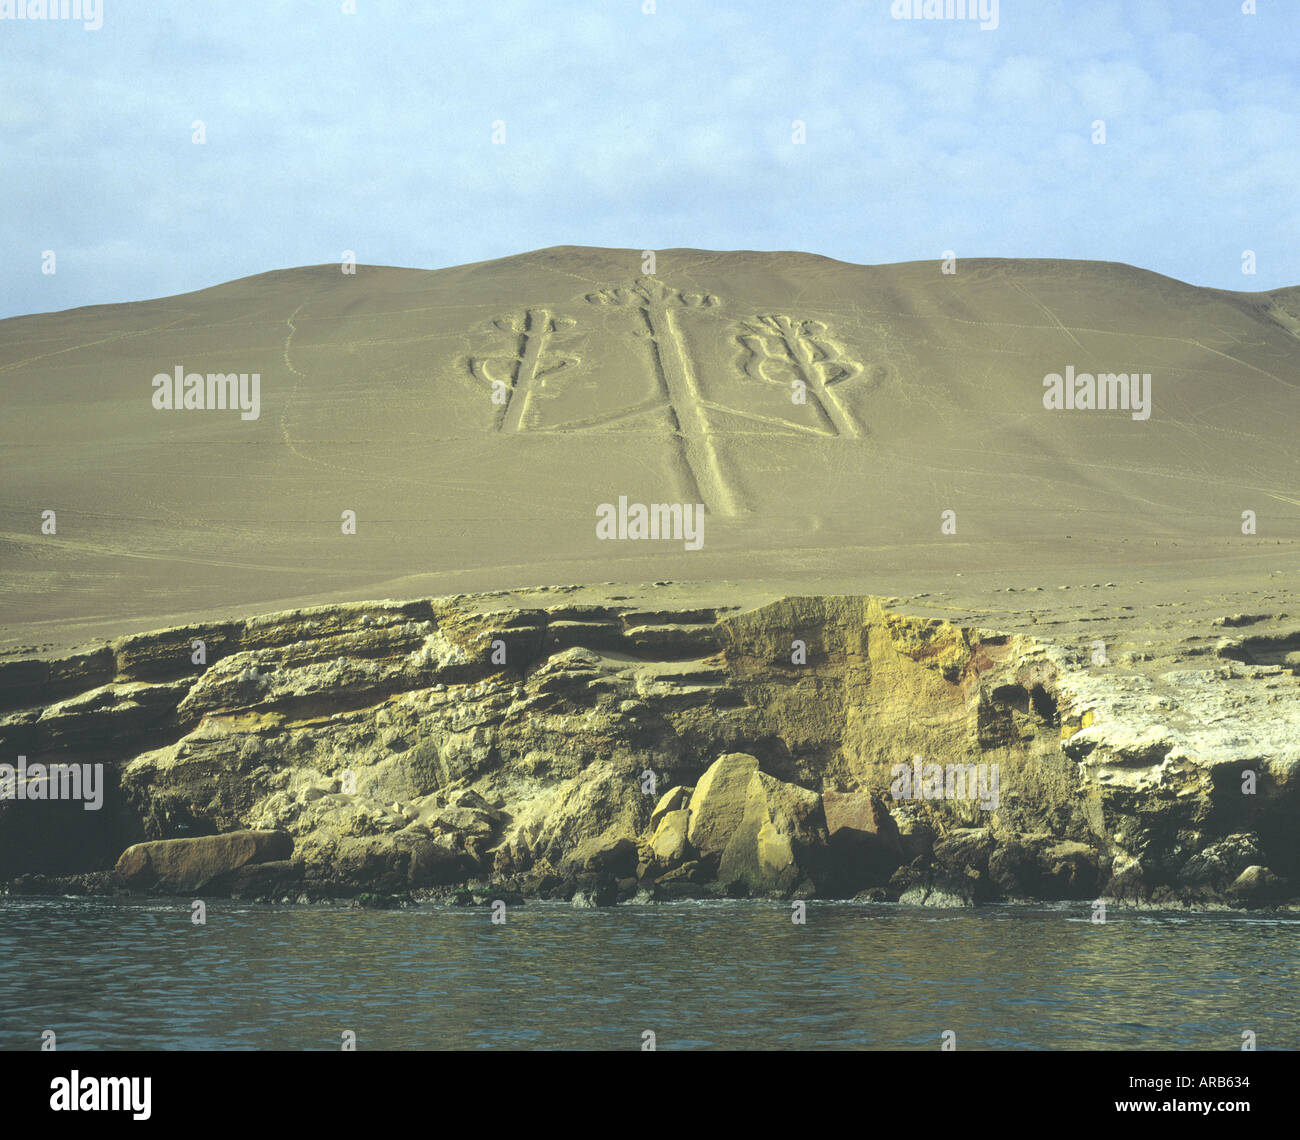 Pre colombian sand marking called the Candelabra overlooking bay   of  Paracas  southern coast of Peru.Photo 1990 - Stock Image